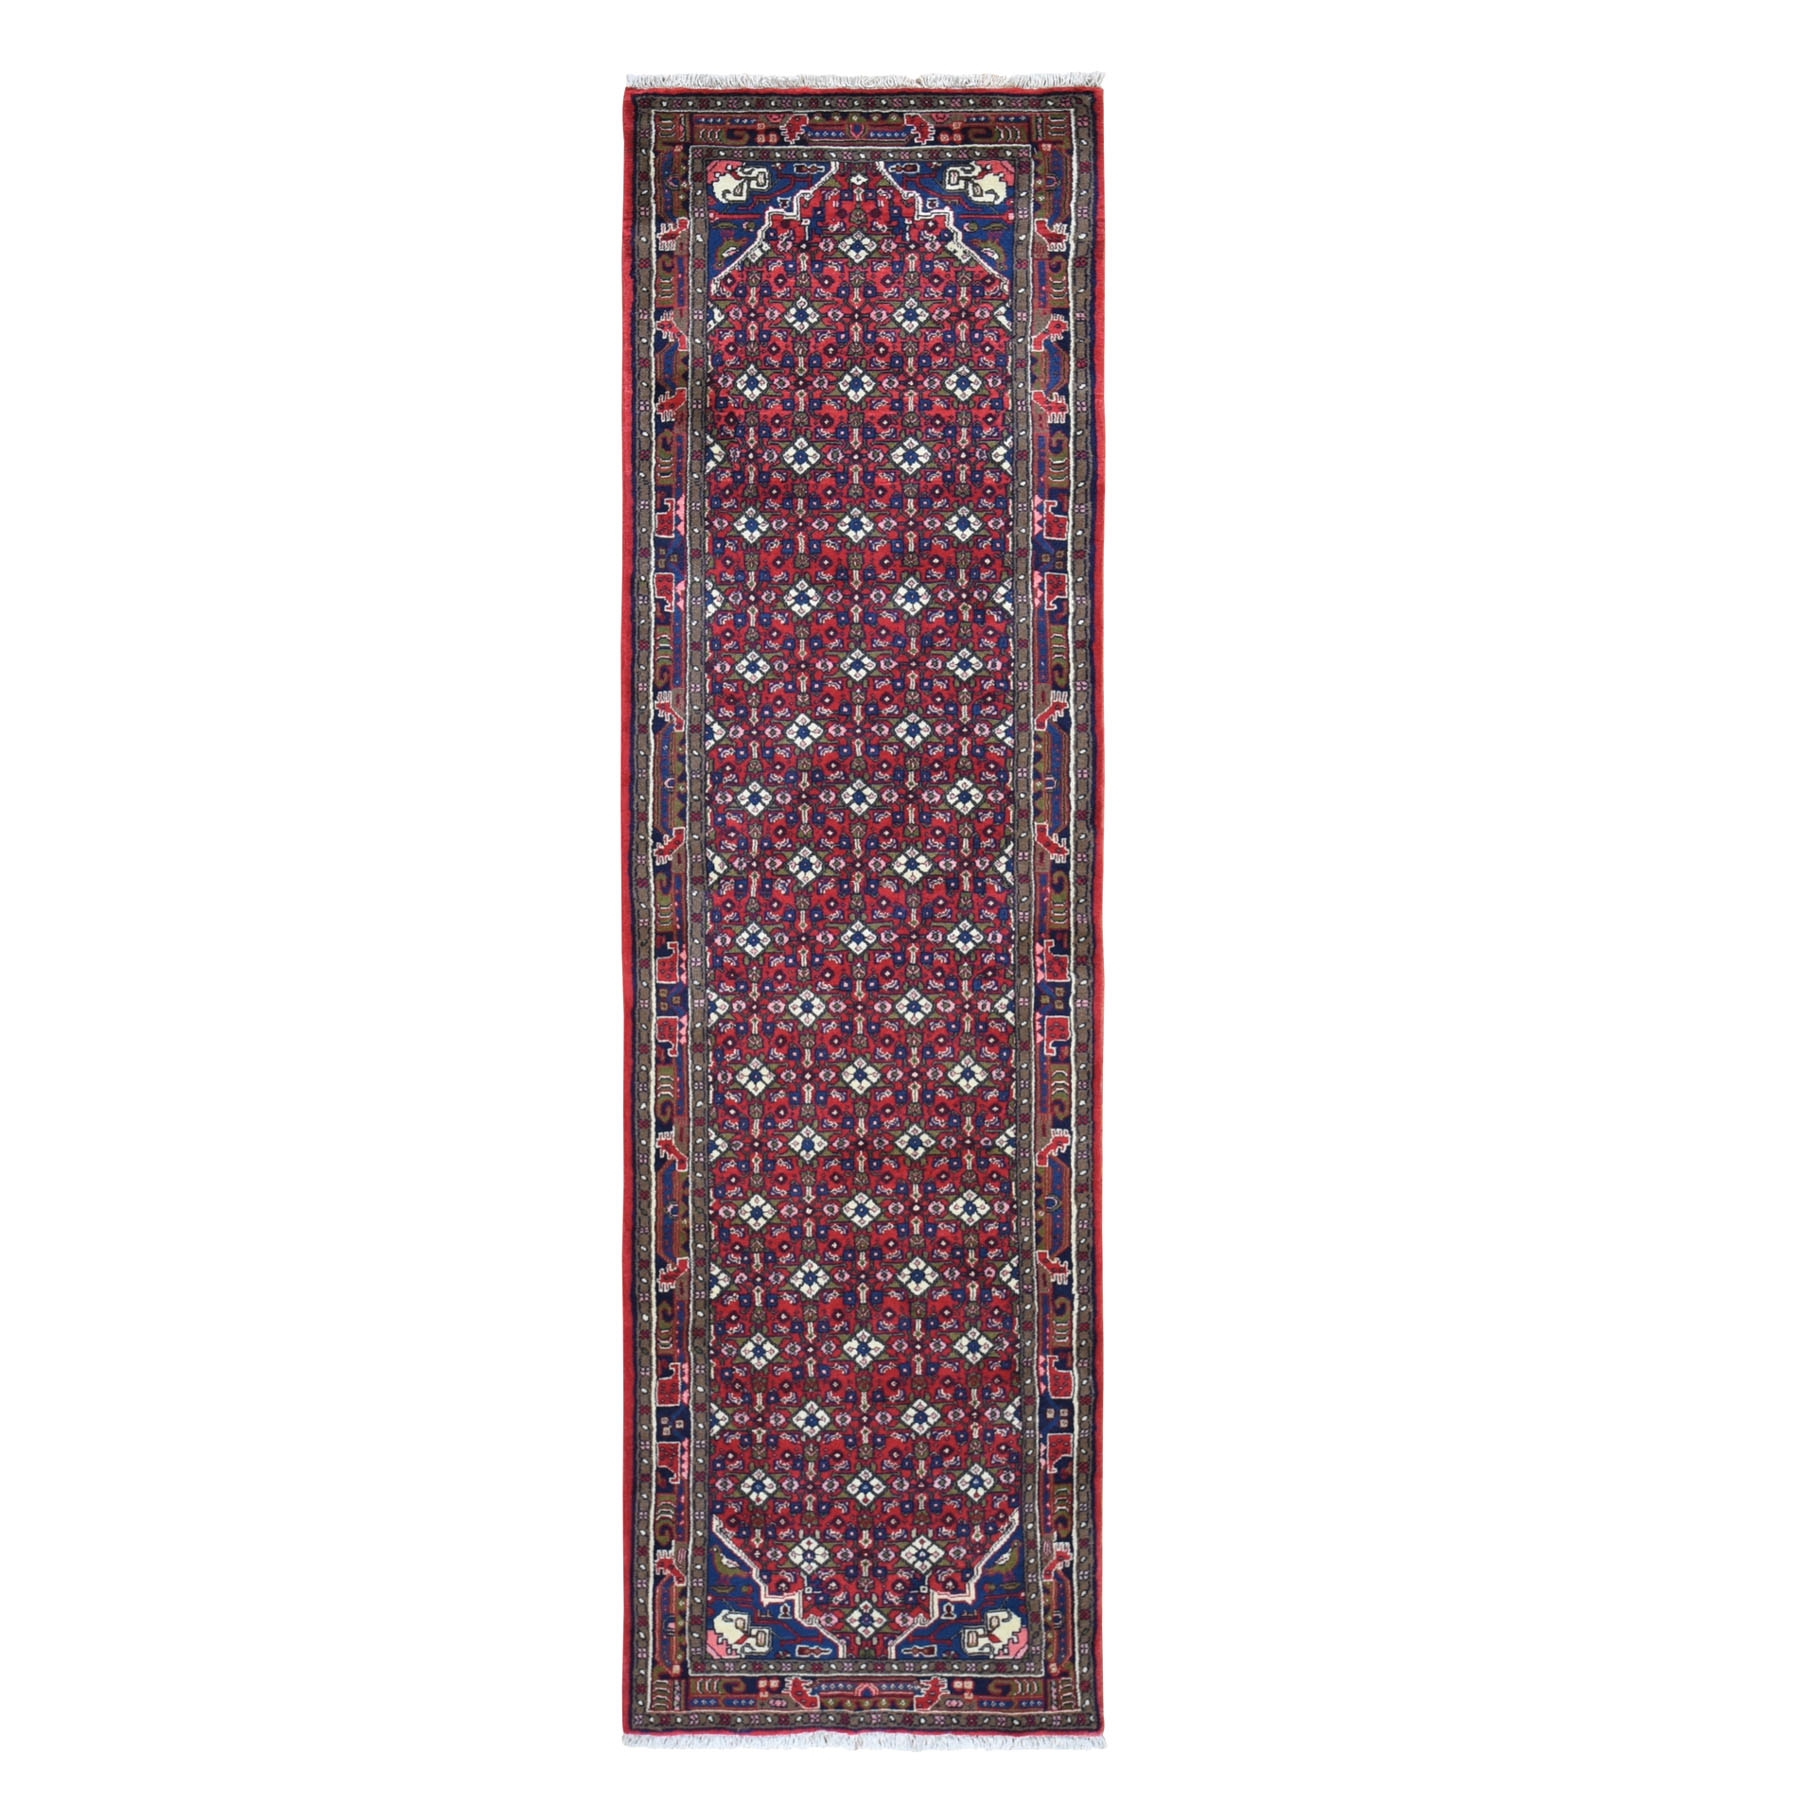 "2'8""x9'1"" Red New Persian Senneh Dense Weave Mahi Fish Design Pure Wool Runner Oriental Rug"